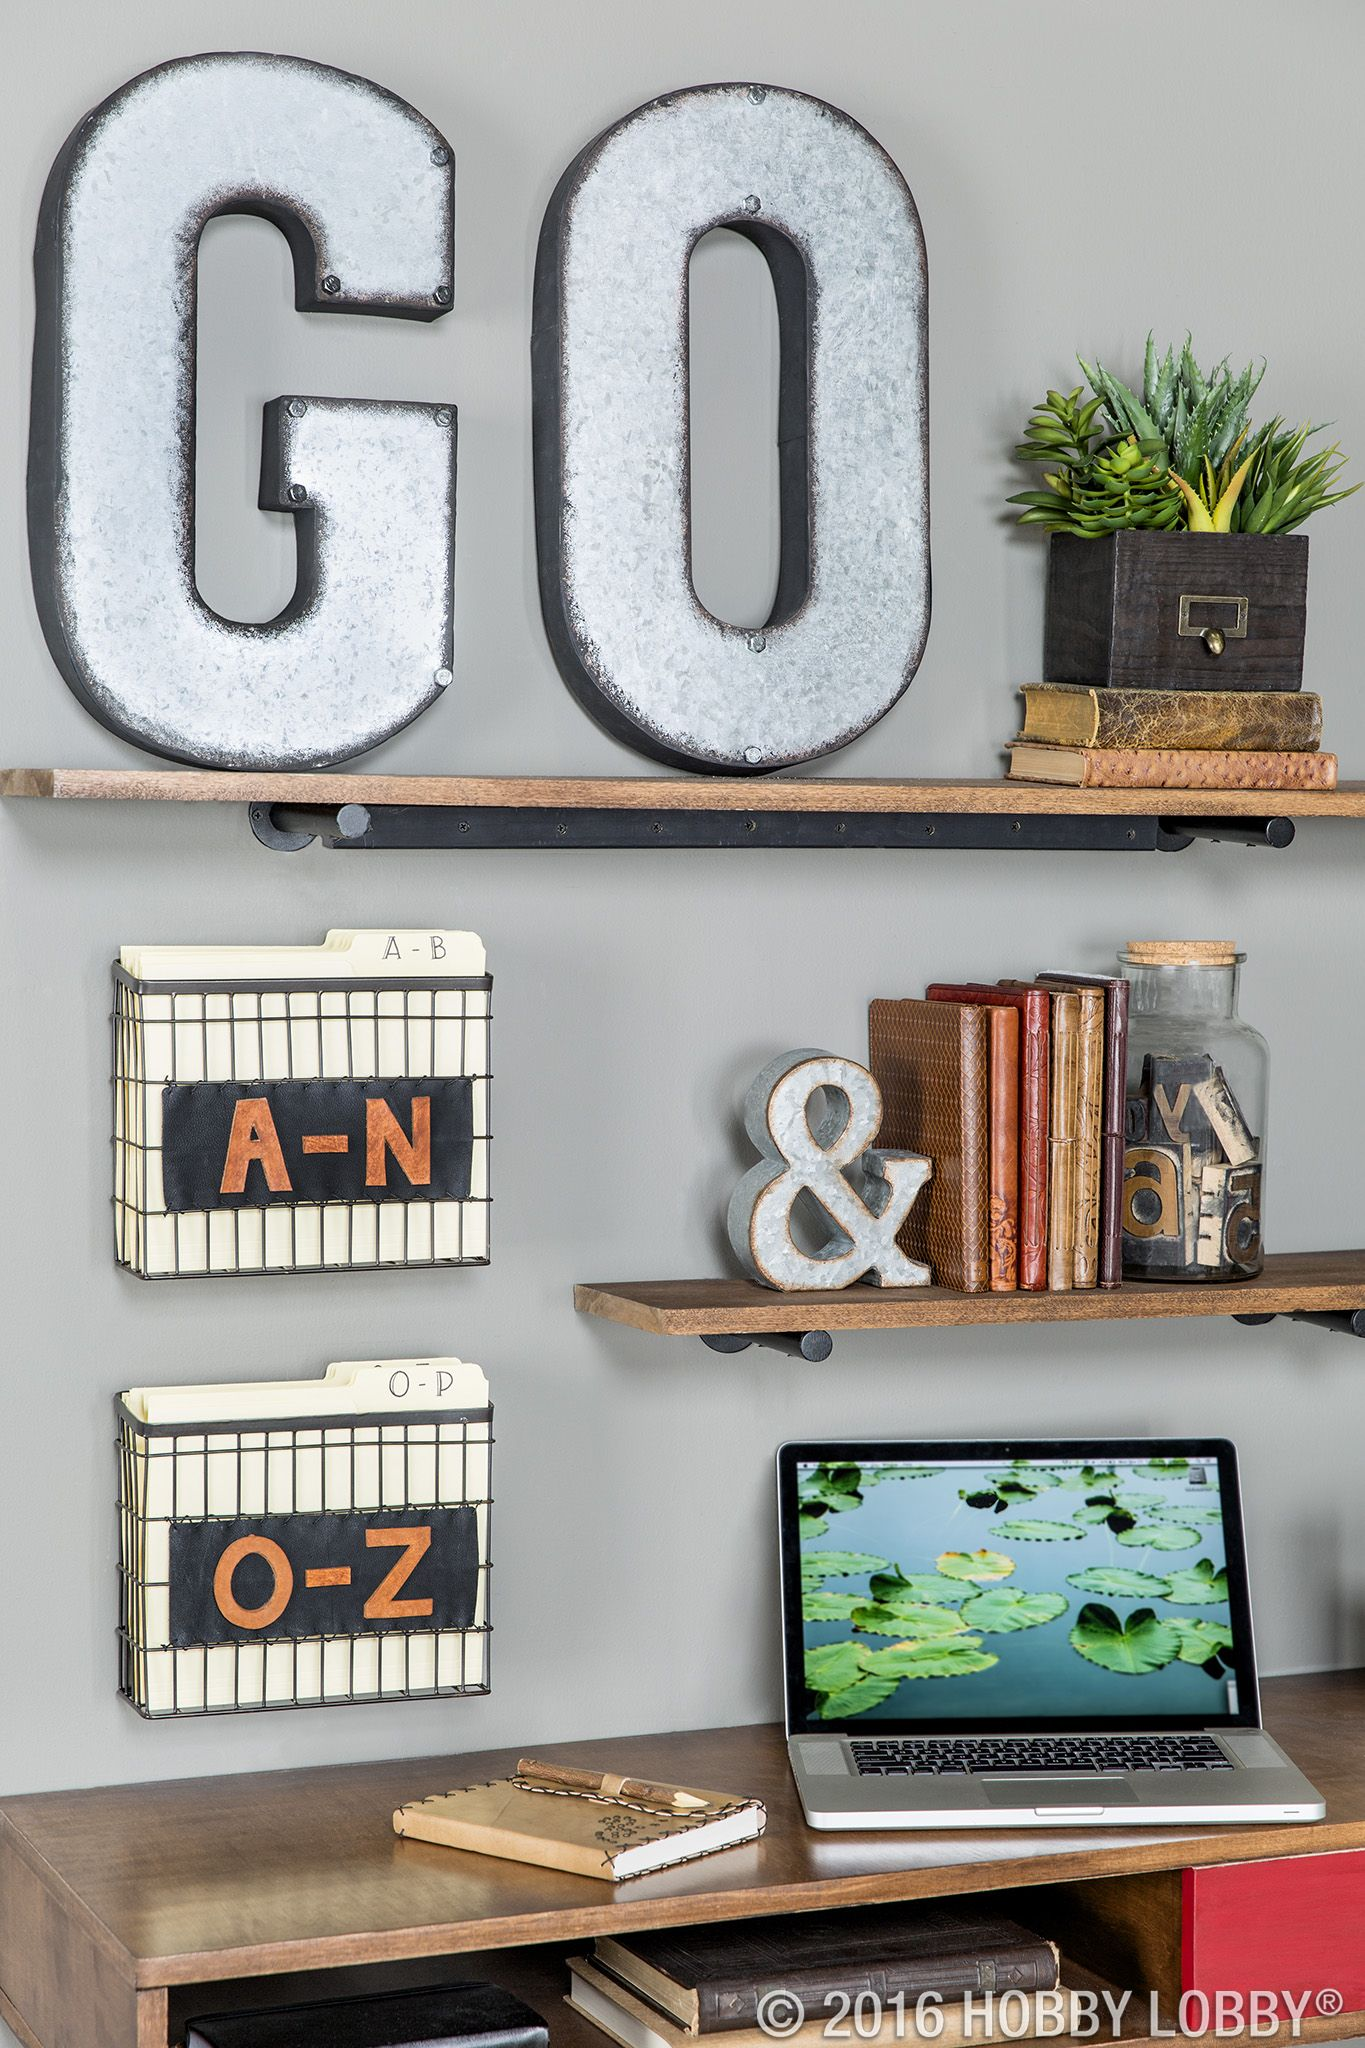 Galvanized Metal Letter Wall Decor A Metal Letter Wall Decor Metal Wall Letters Diy Home Decor On A Budget